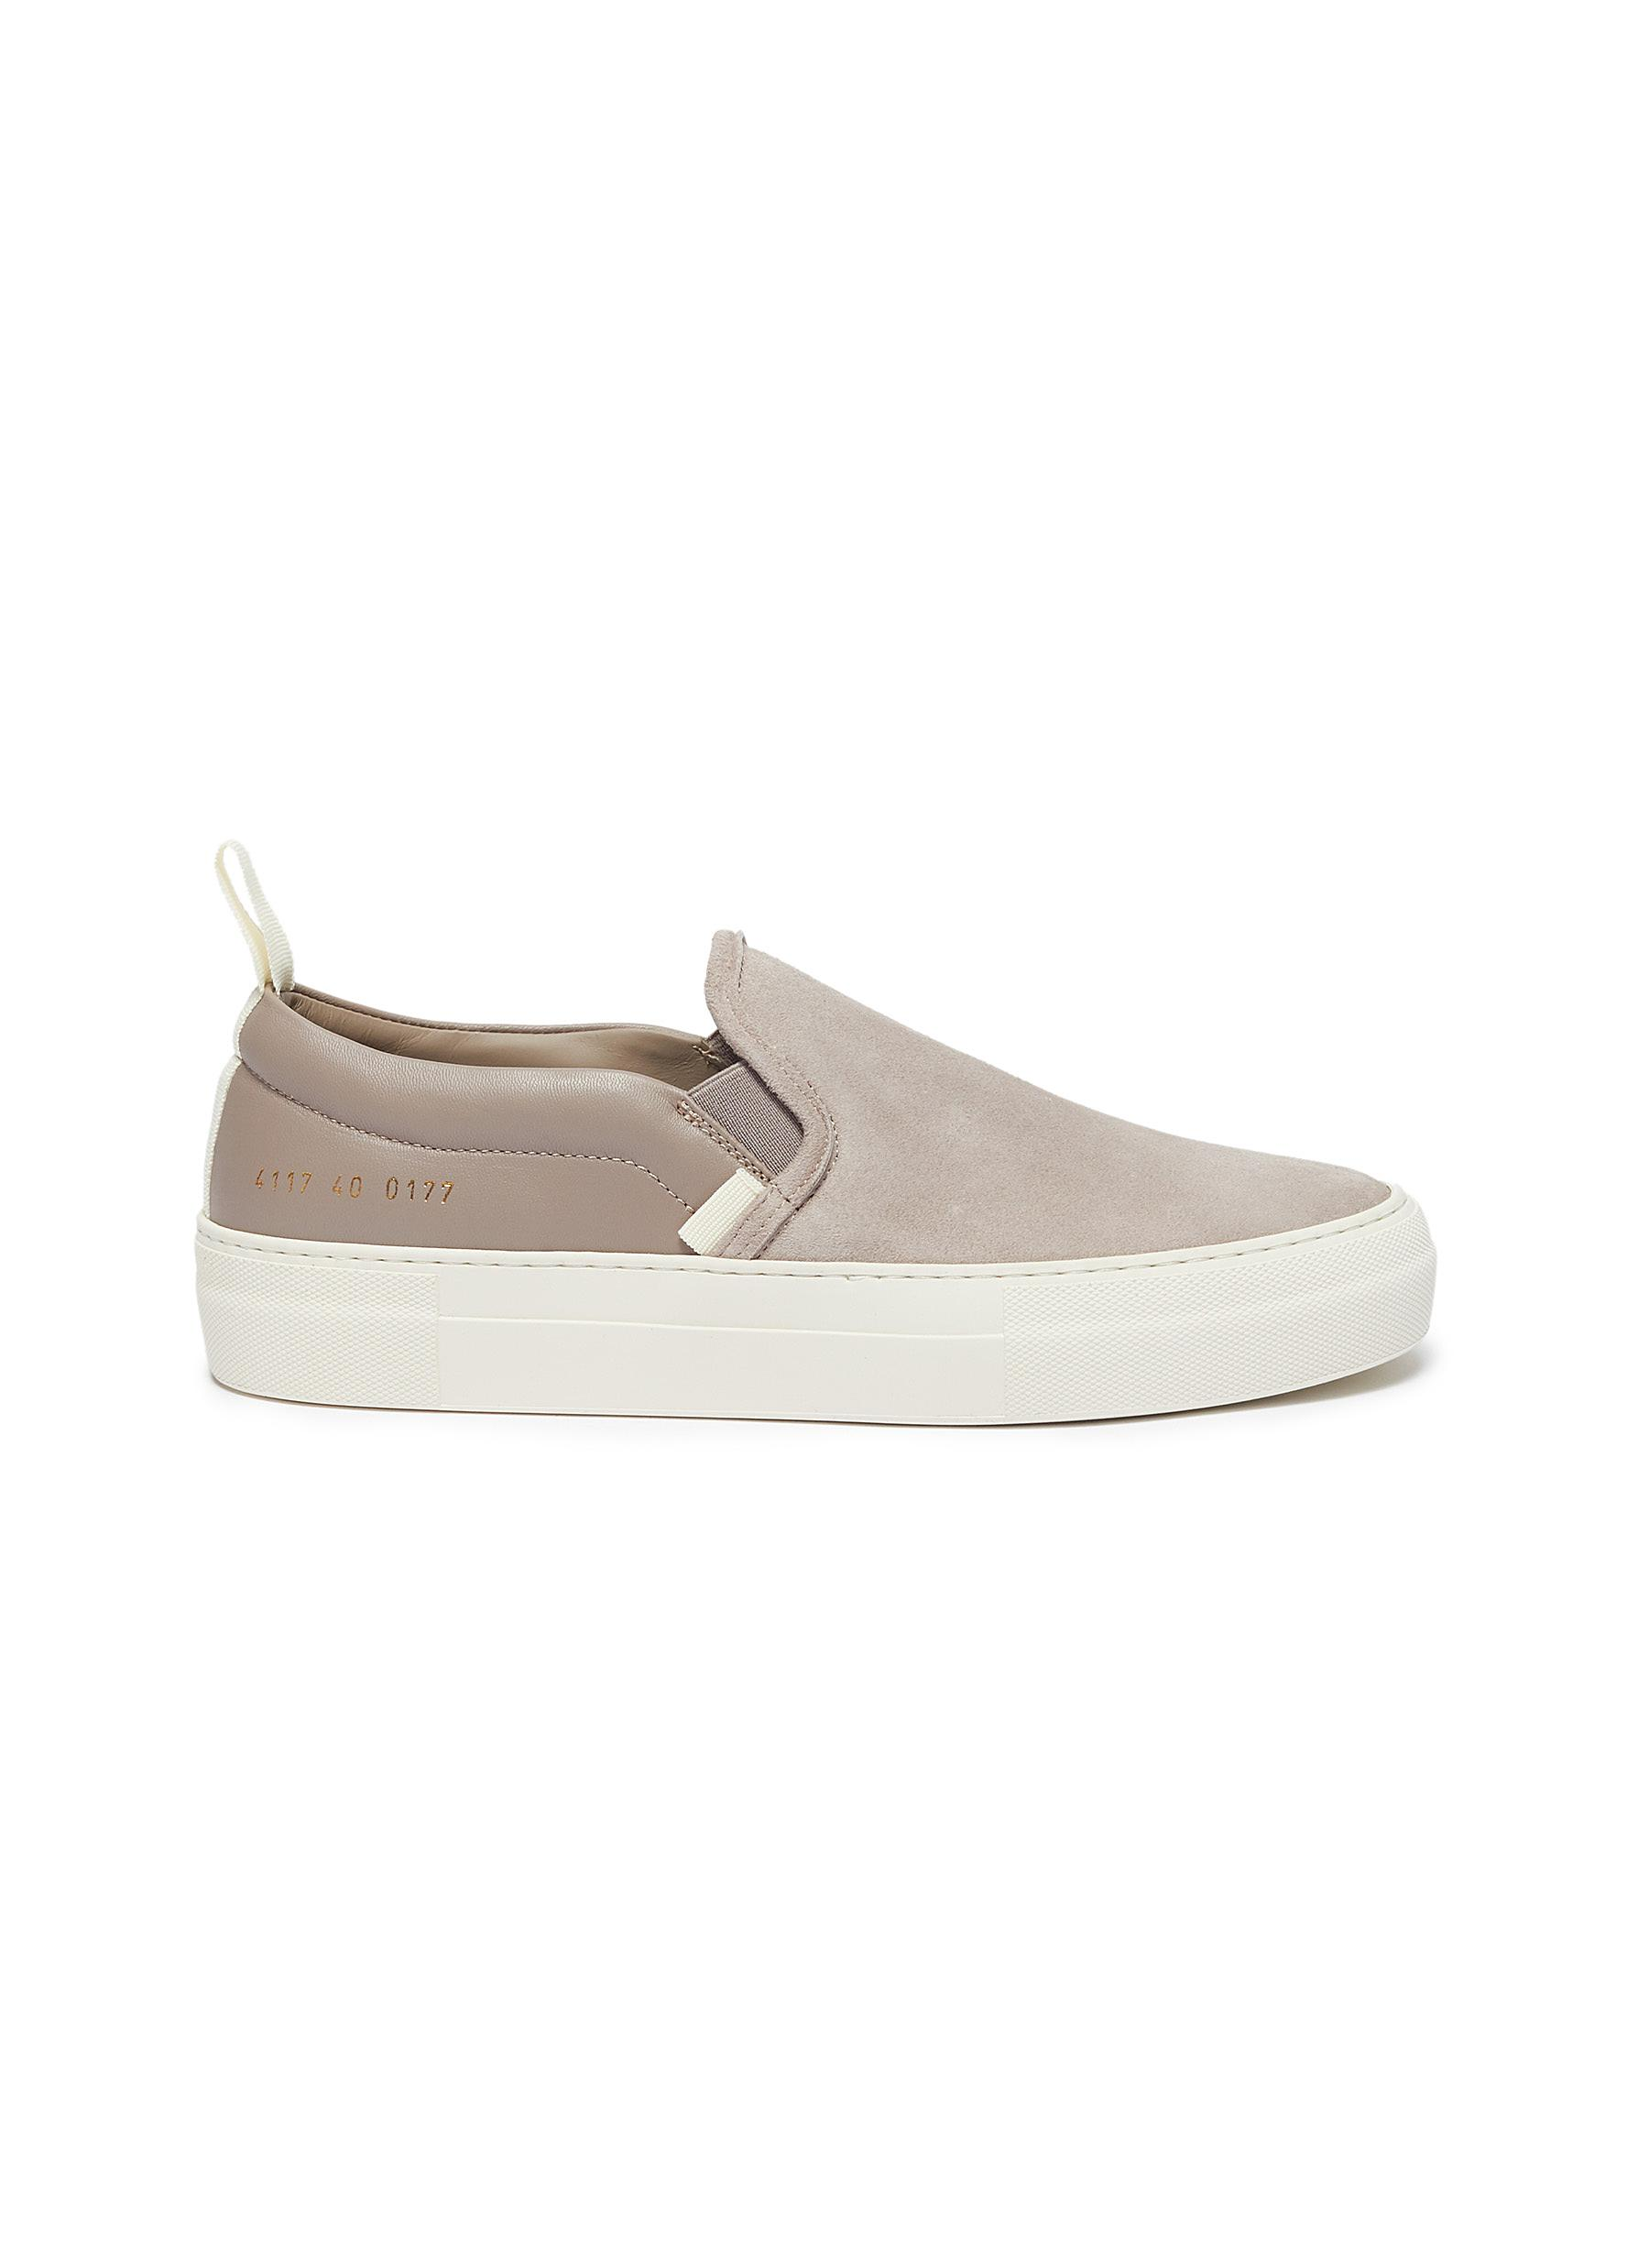 Suede panelled leather skate slip-ons by Common Projects